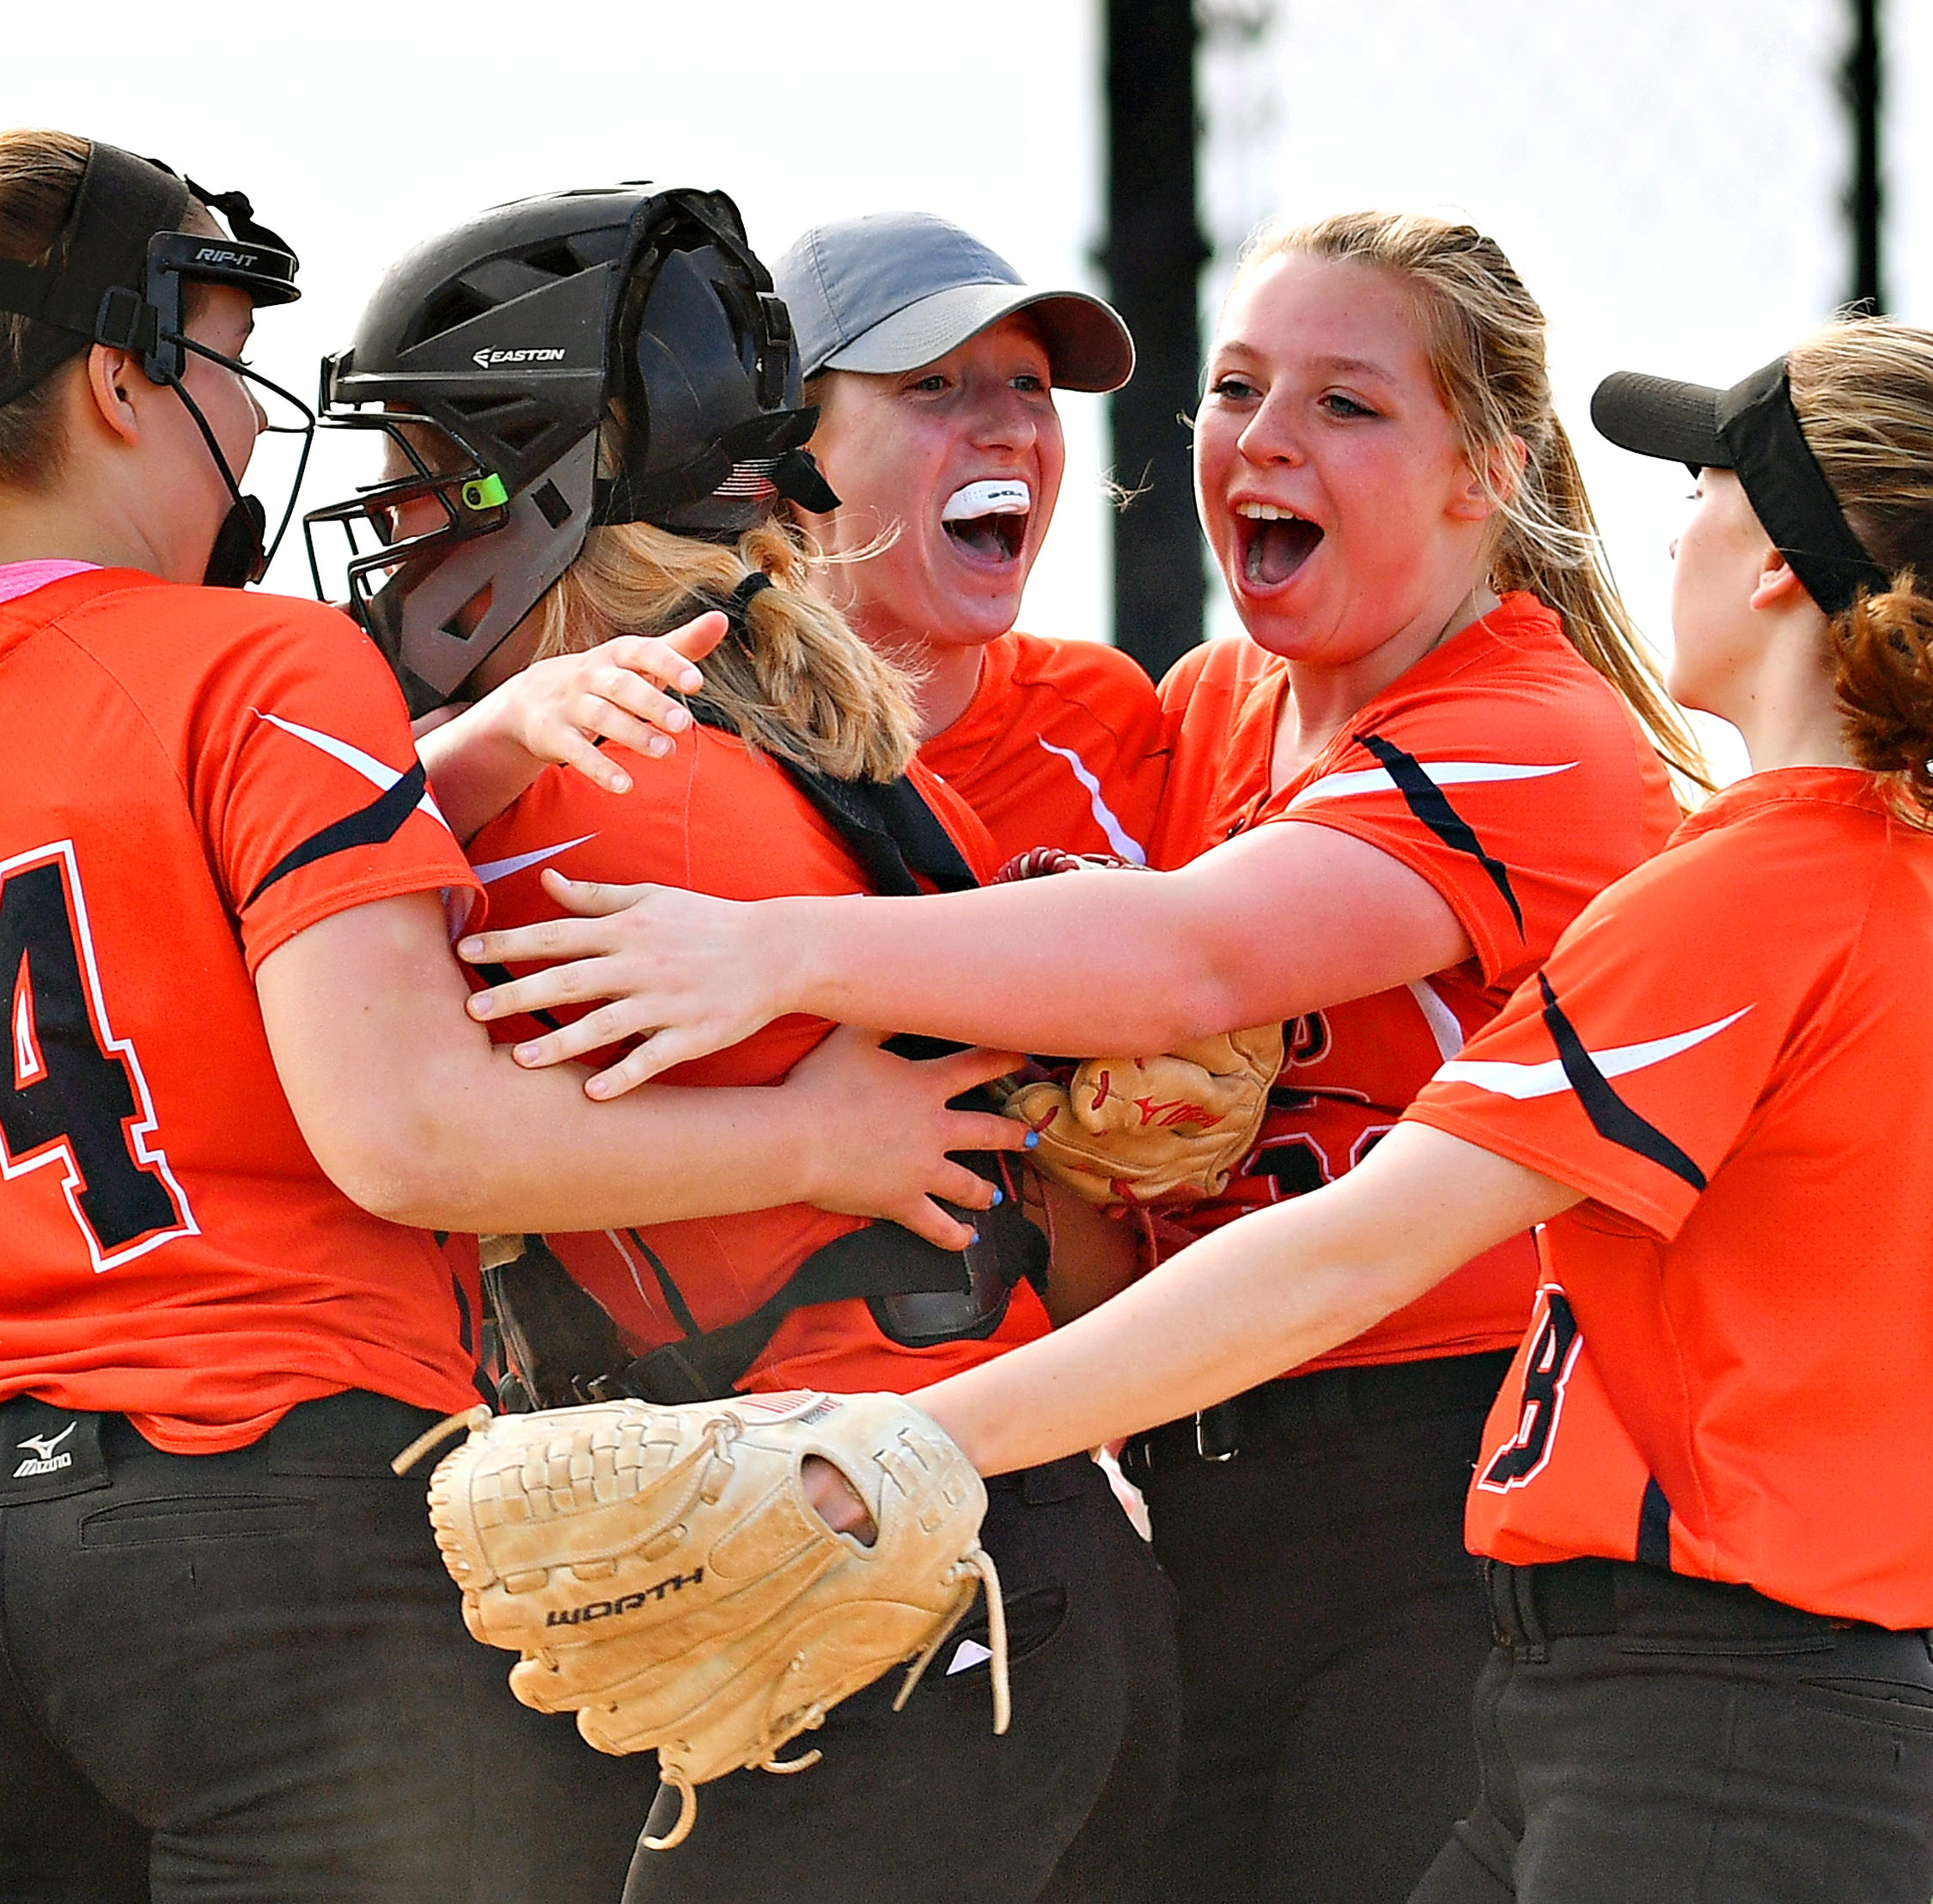 PREP ROUNDUP, WEDNESDAY, APRIL 24: Northeastern edges Central York for key softball win